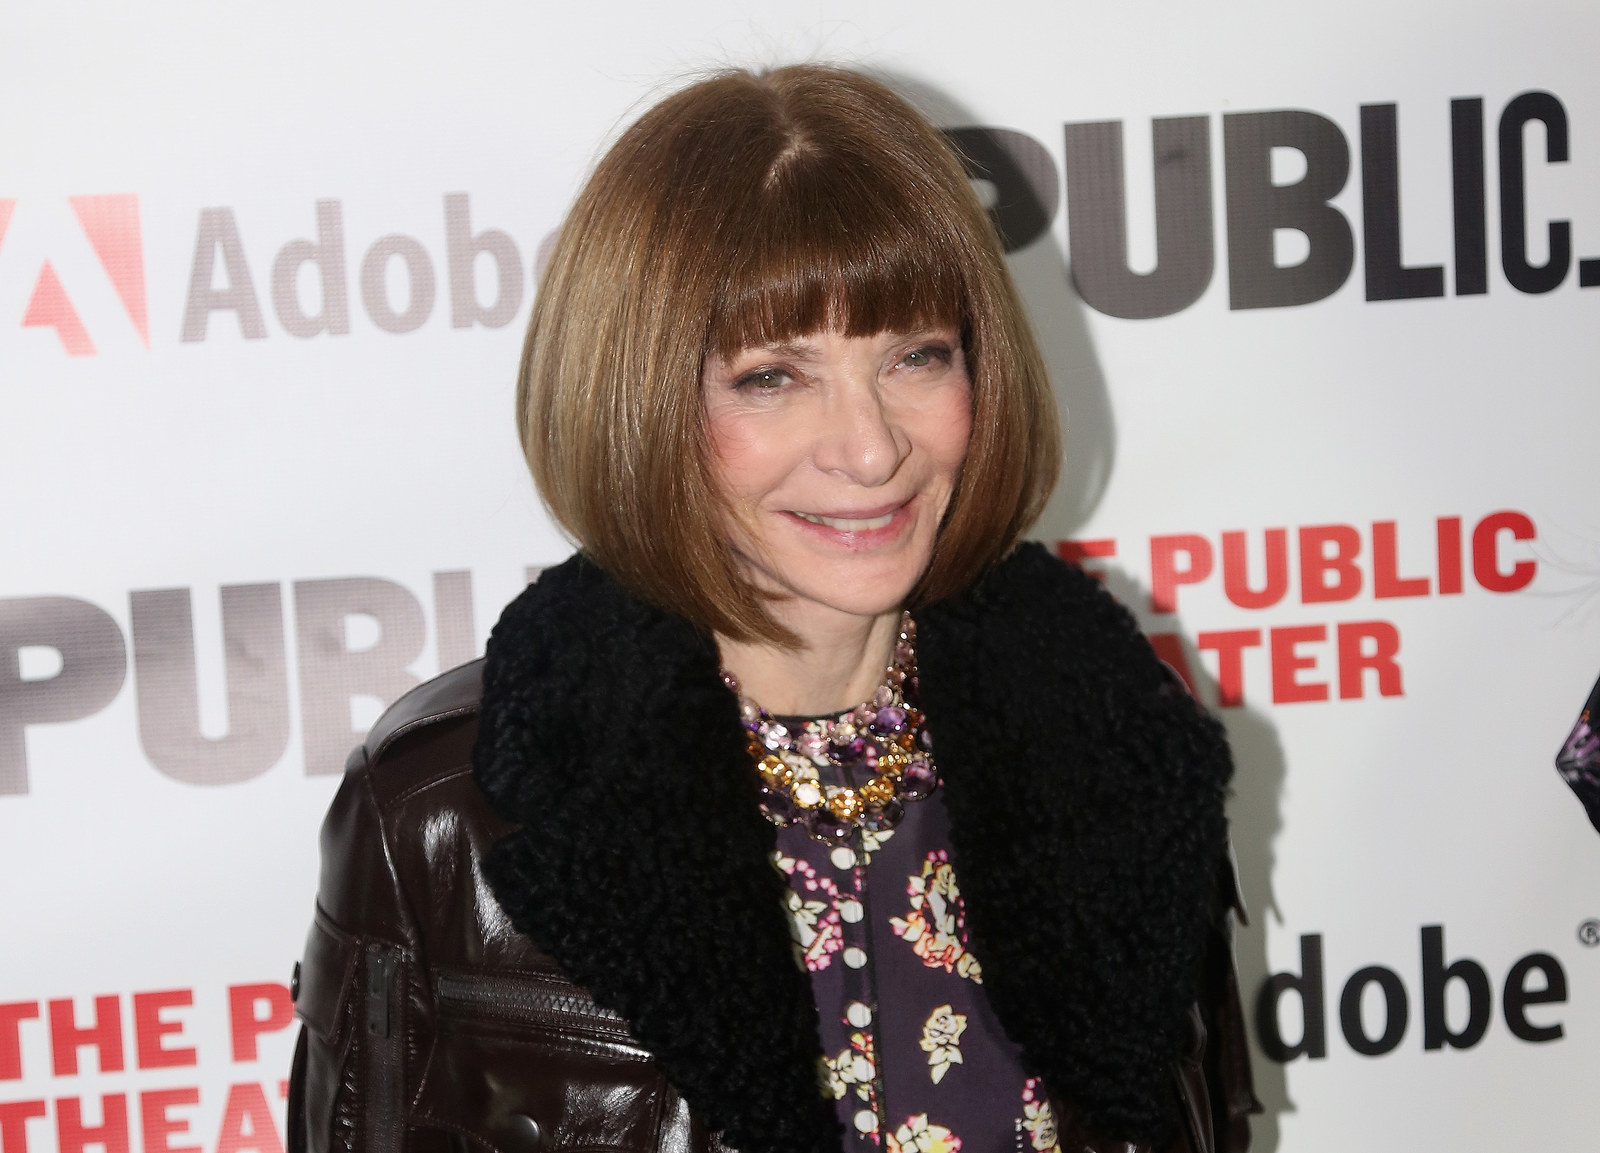 Let's cut to the chase: This is Anna Wintour, the famed editor of Vogue.